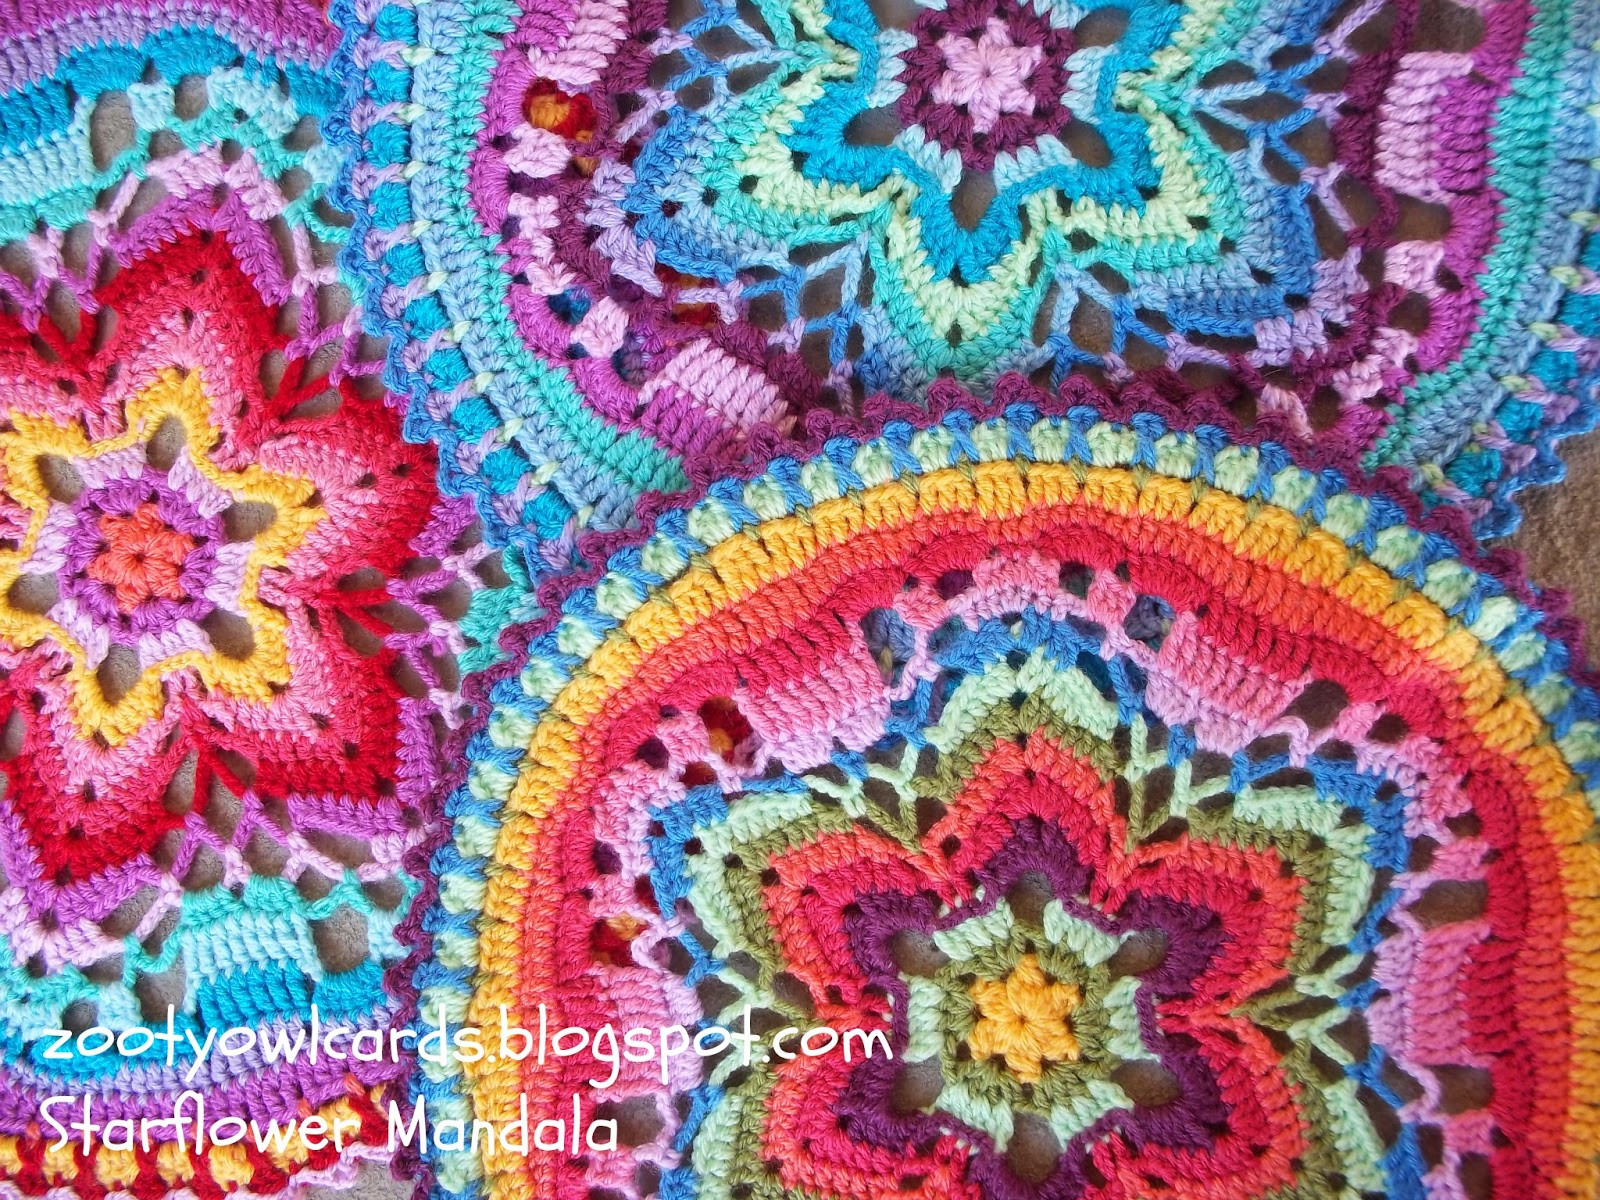 Crochet Mandalas Fresh Zooty Owl S Crafty Blog Starflower Mandala Row by Row Of Incredible 41 Pics Crochet Mandalas